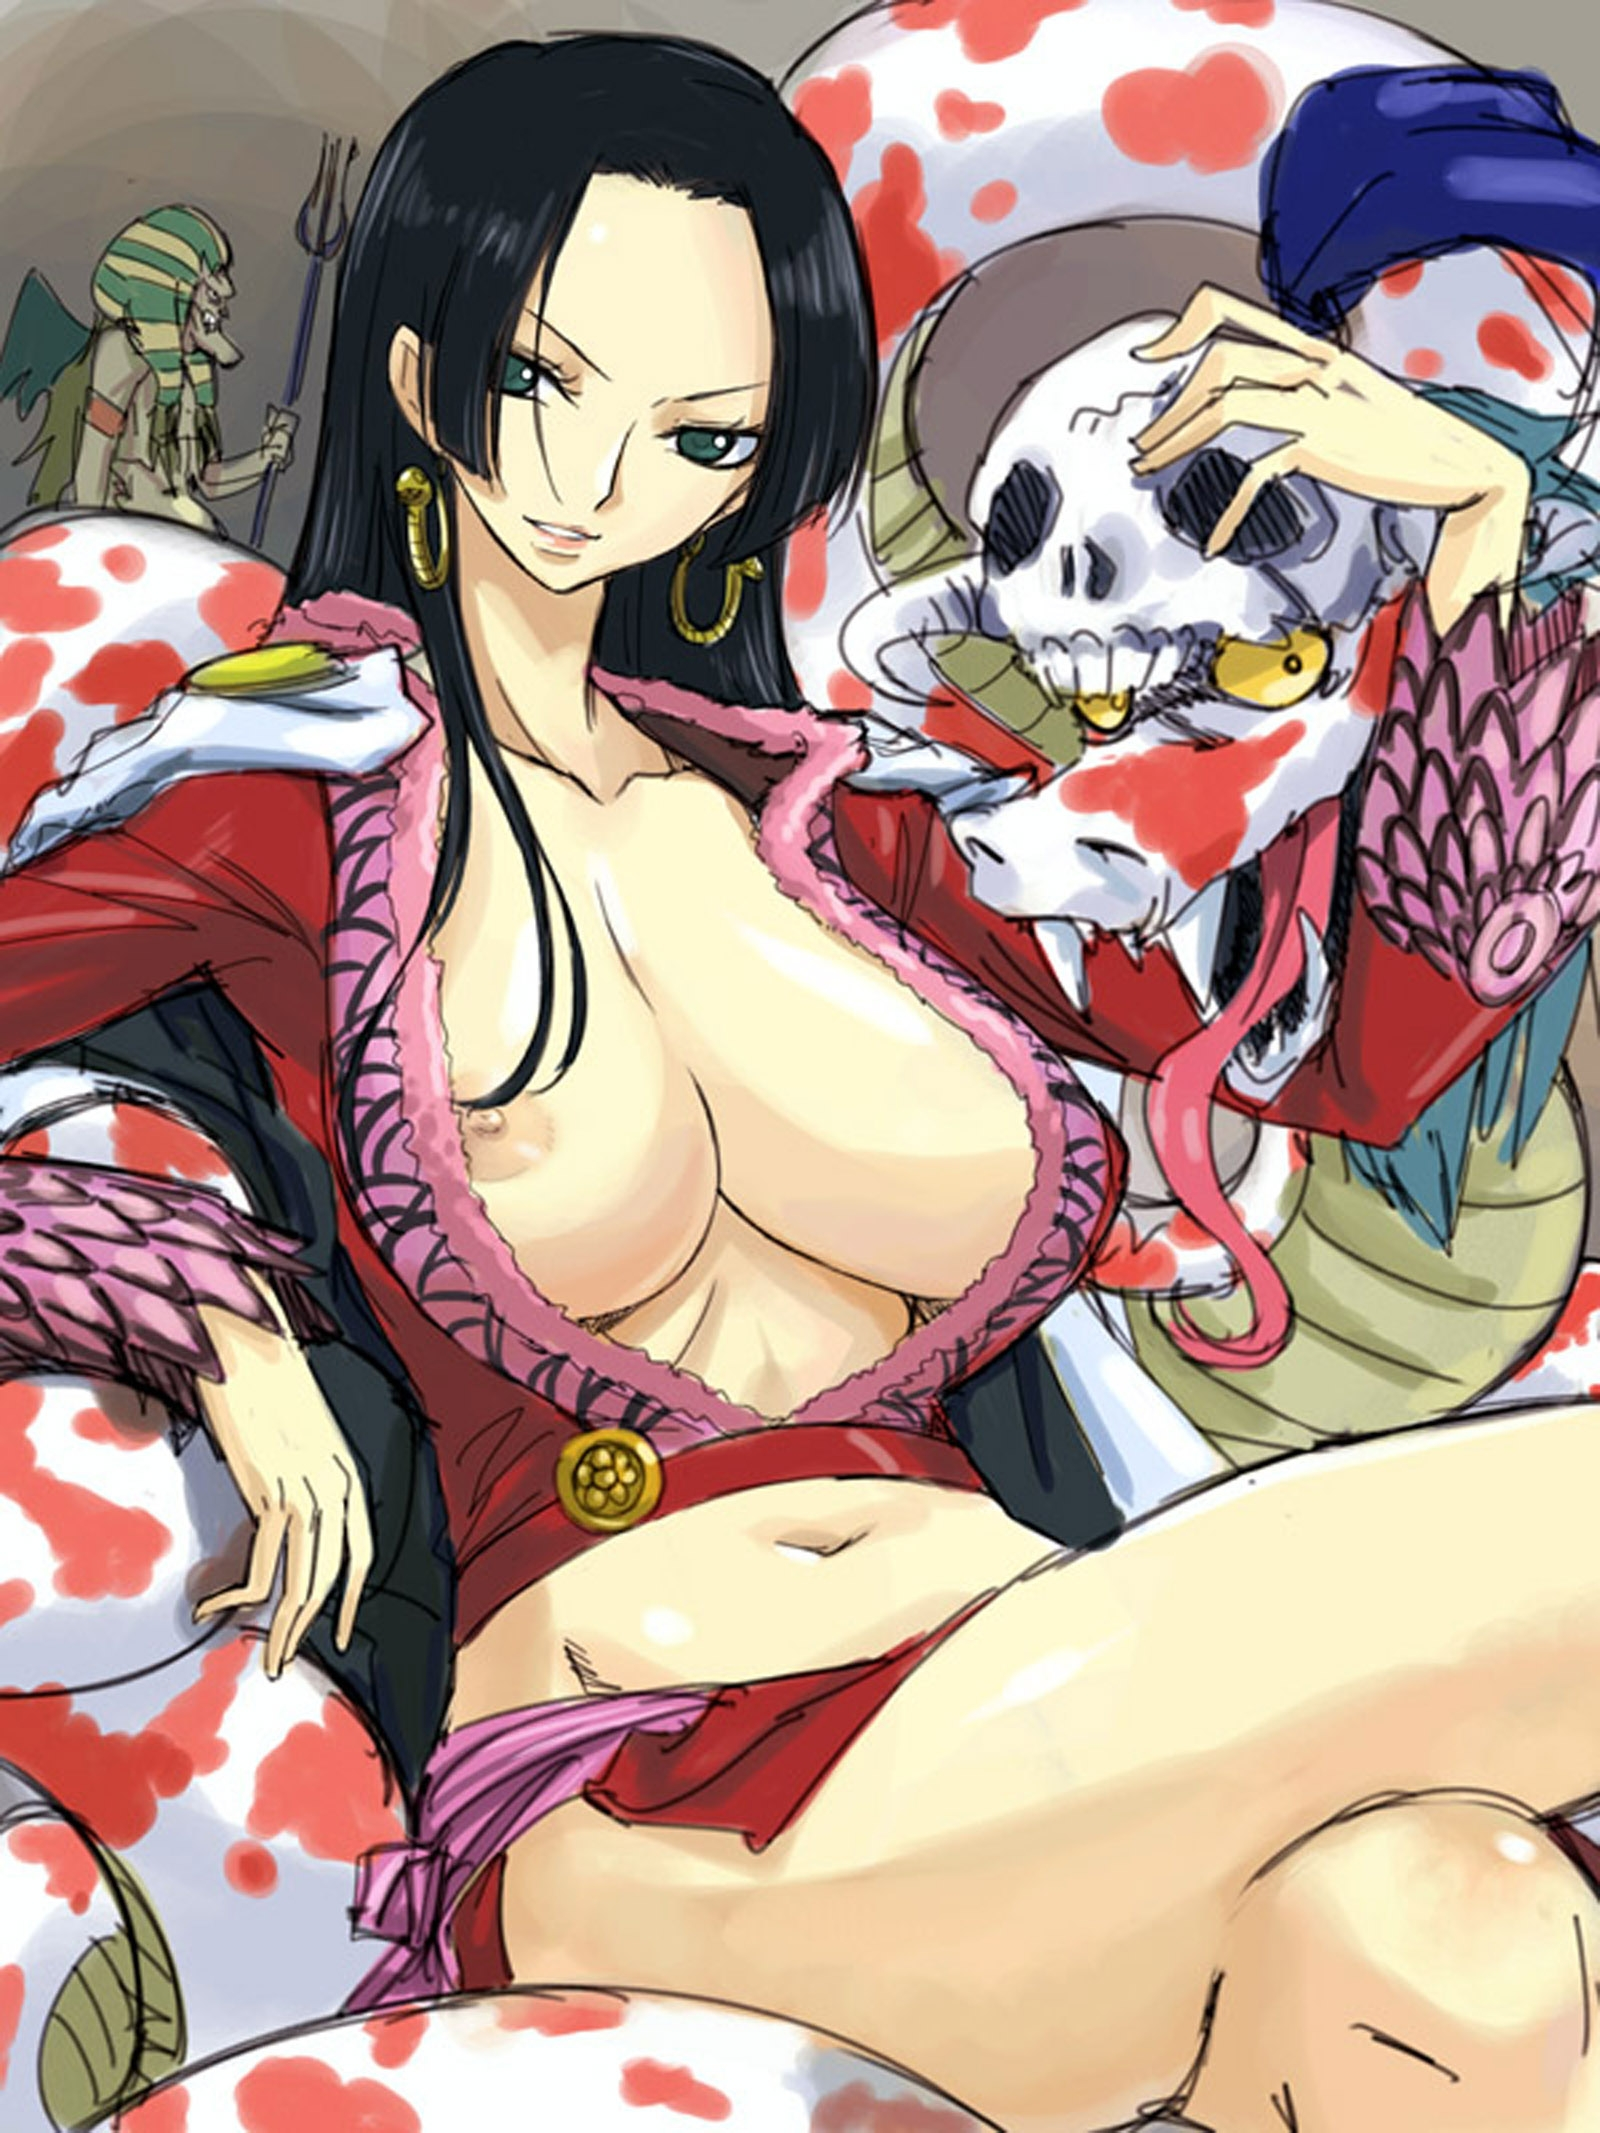 Toon sex pic ##00013061803 black hair boa hancock breasts crossed legs earrings green eyess hannyabal highres huge breasts jewelry legs crossed long hair michael midriff nipple slip nipples no bra one piece resized salome (one piece) sitting skirt skull smile snake